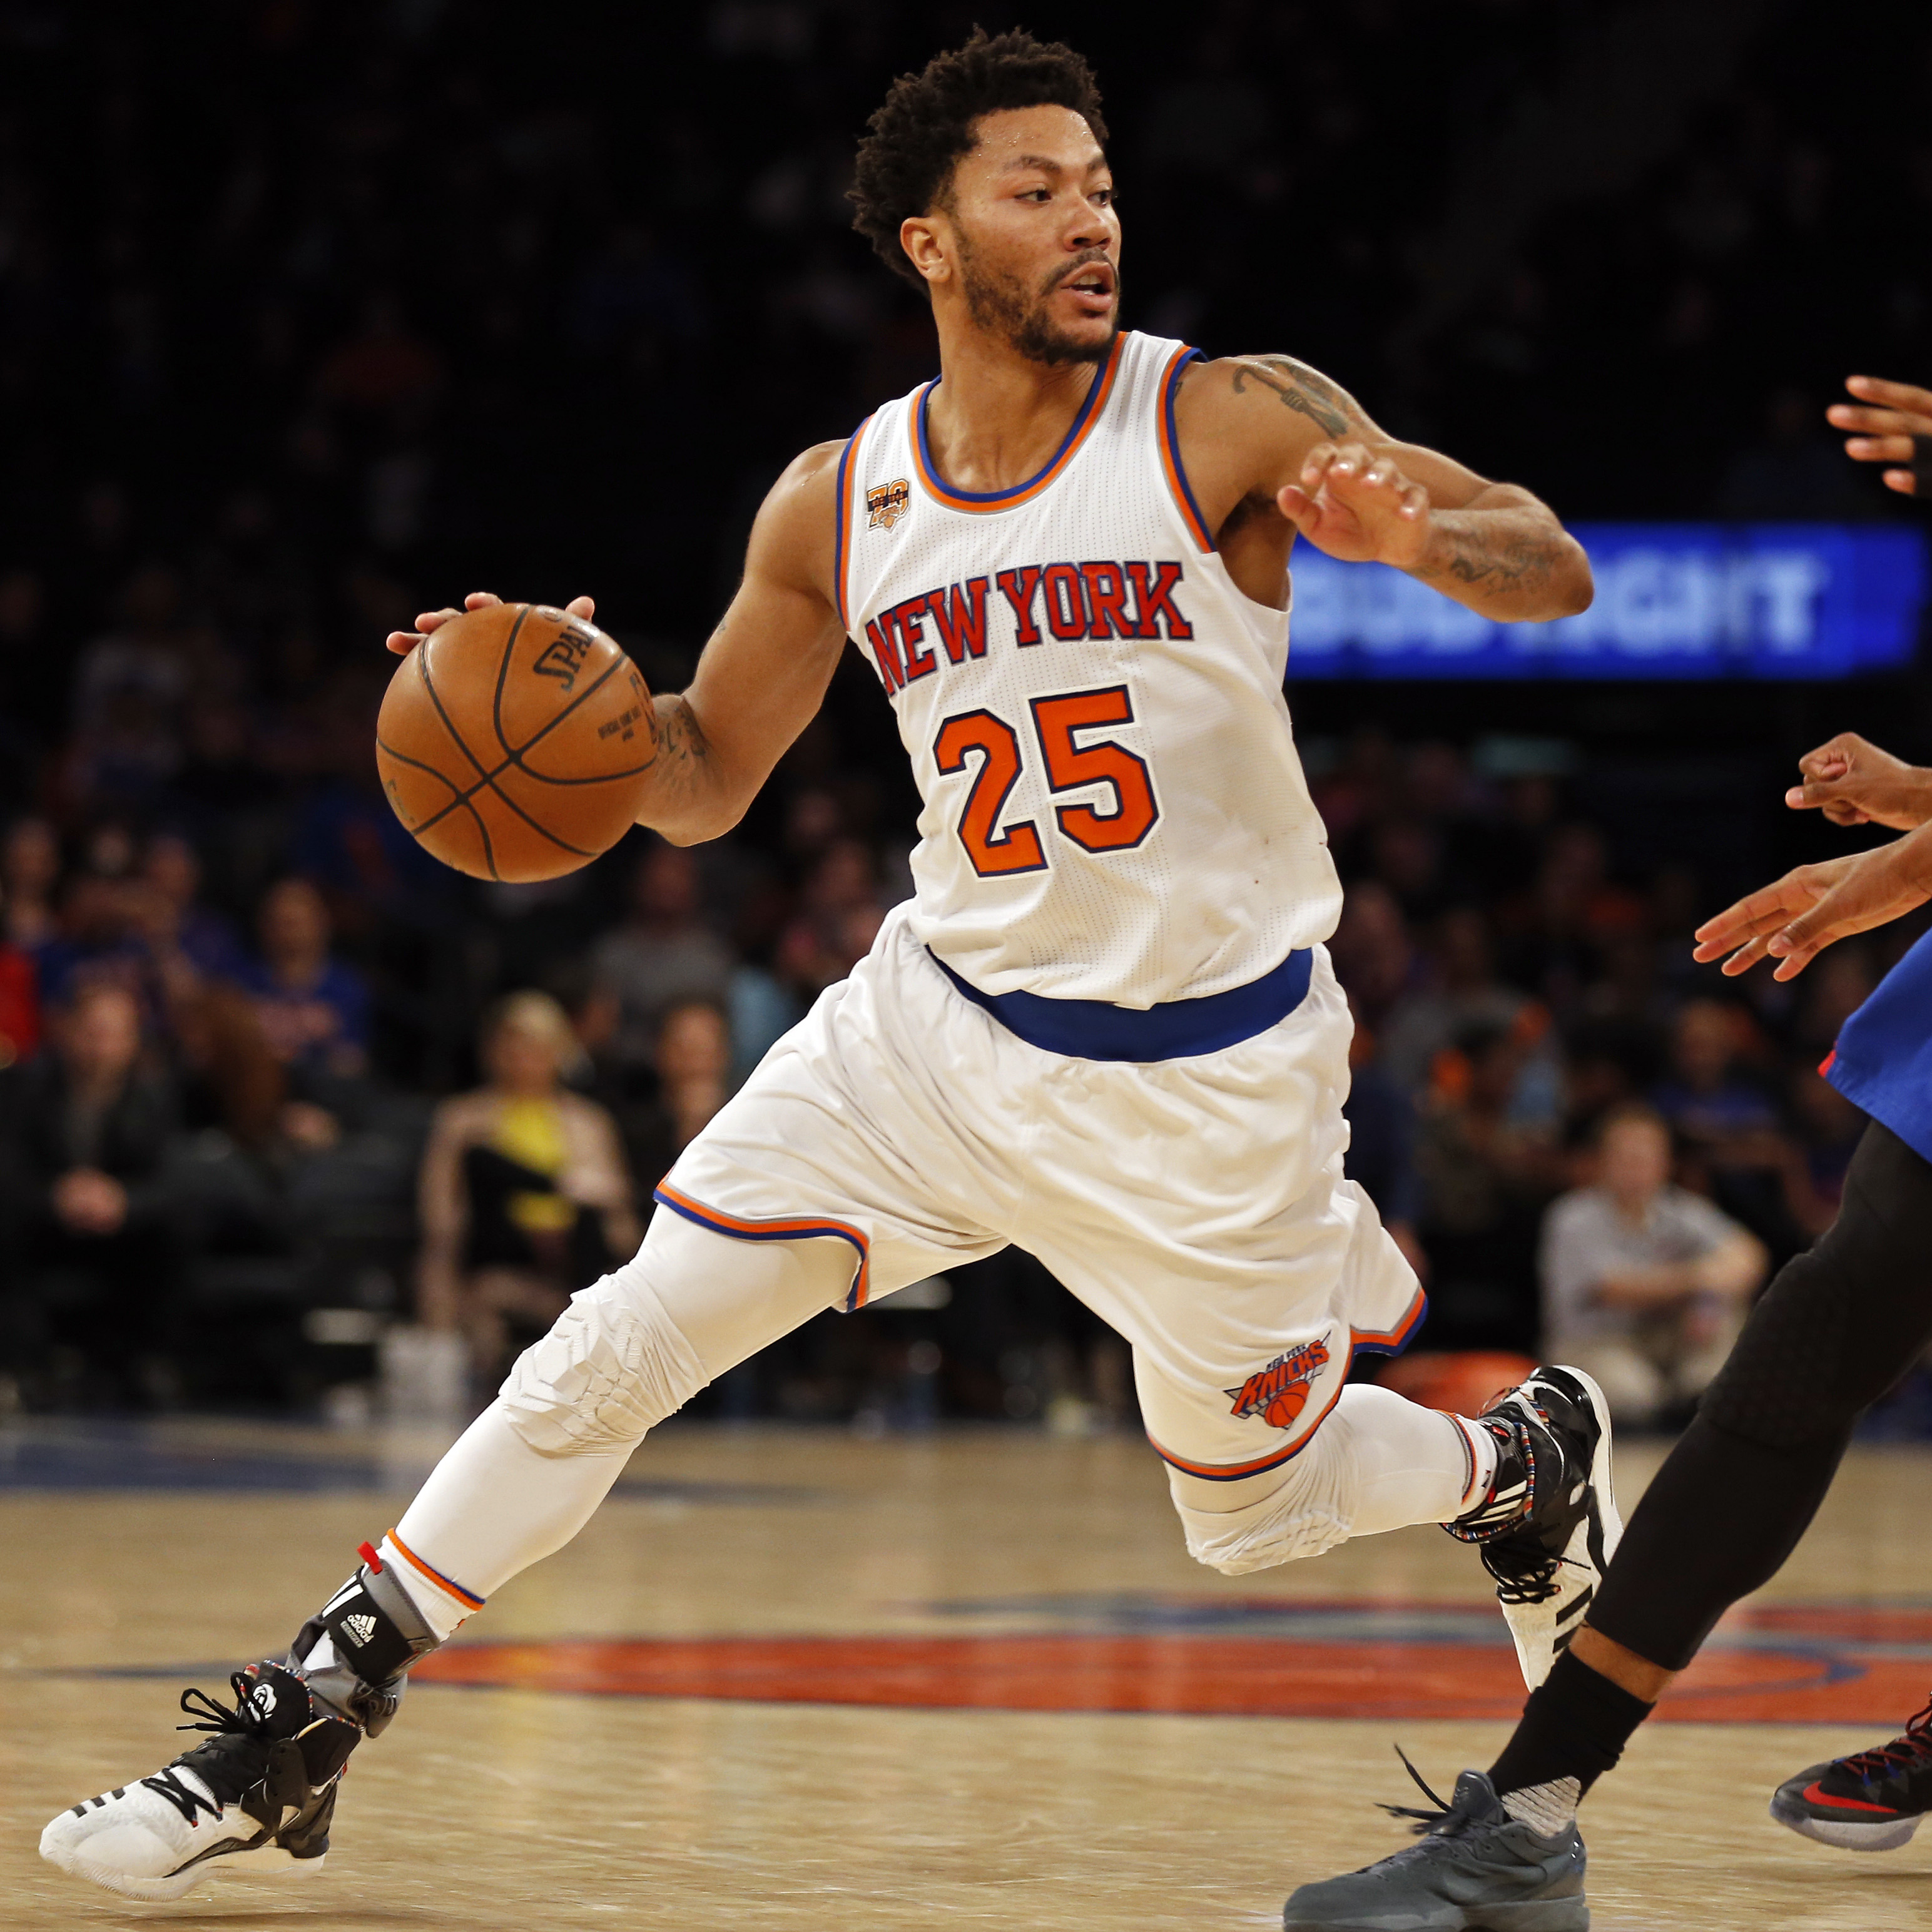 New York Knicks: How Much Is Derrick Rose Worth?